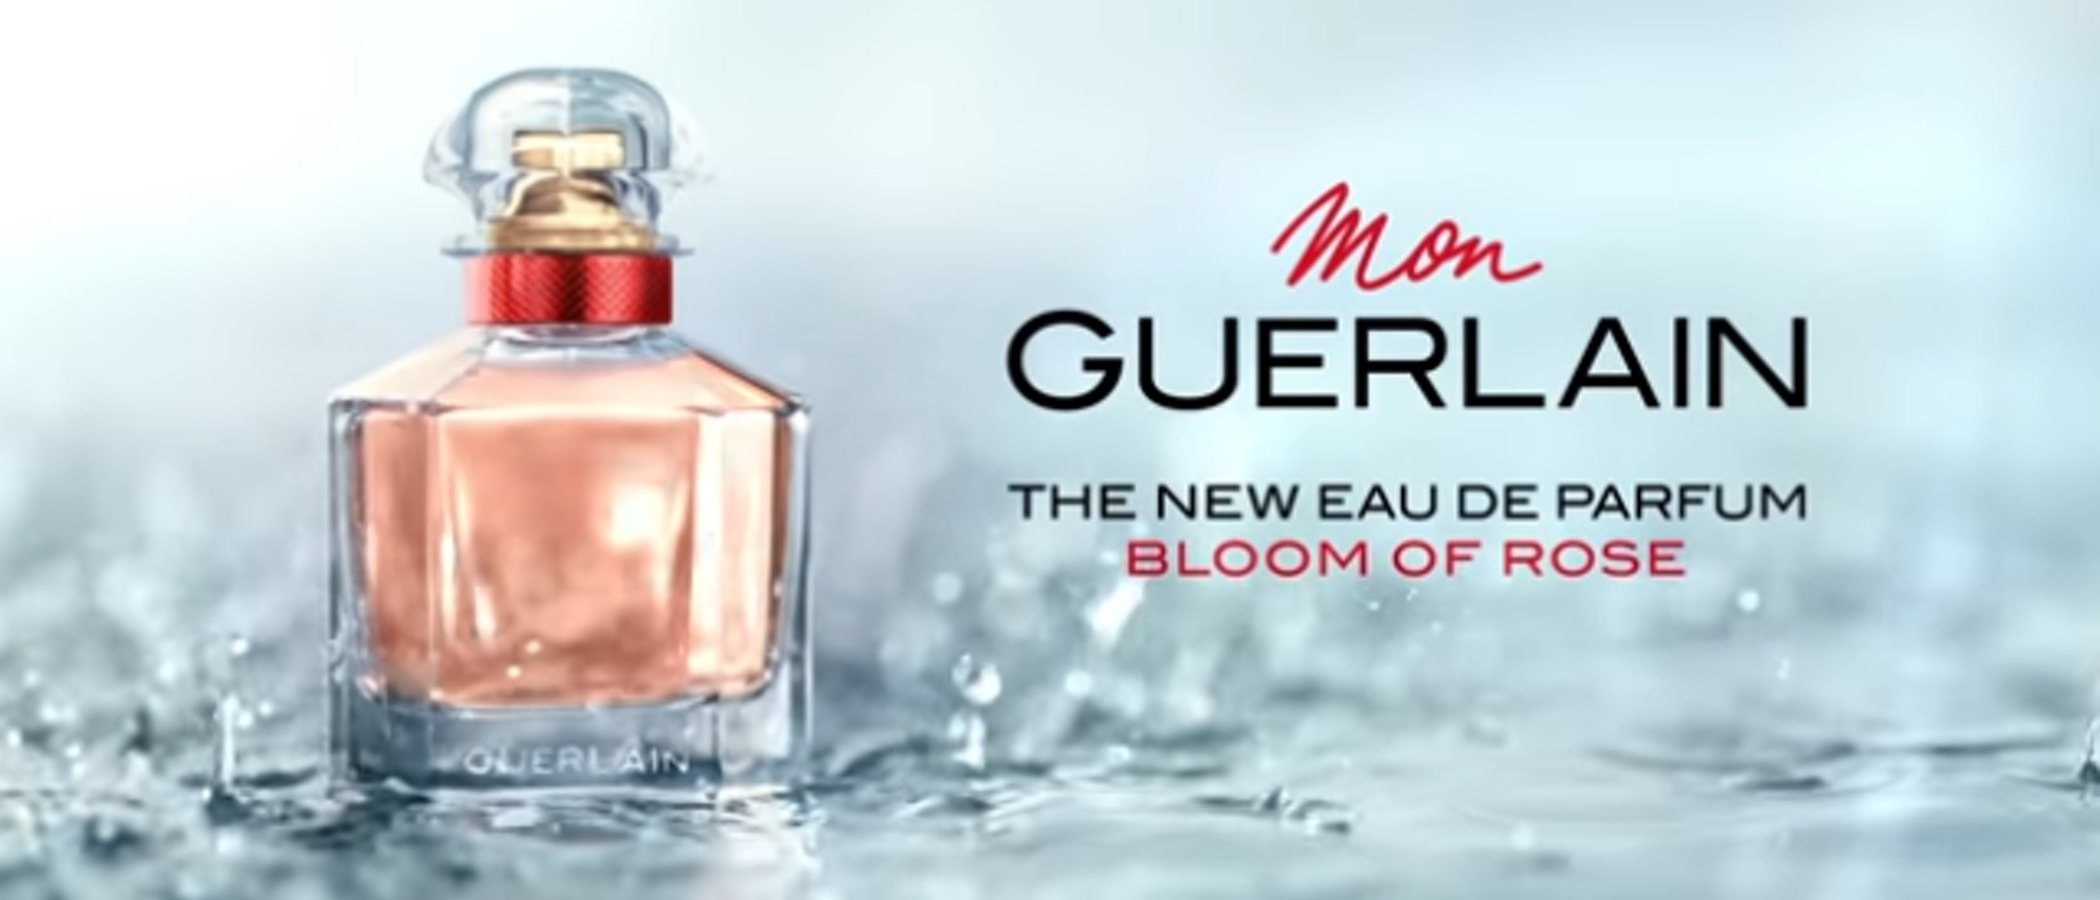 Angelina Jolie sigue siendo la musa de 'Bloom of Rose' de Guerlain